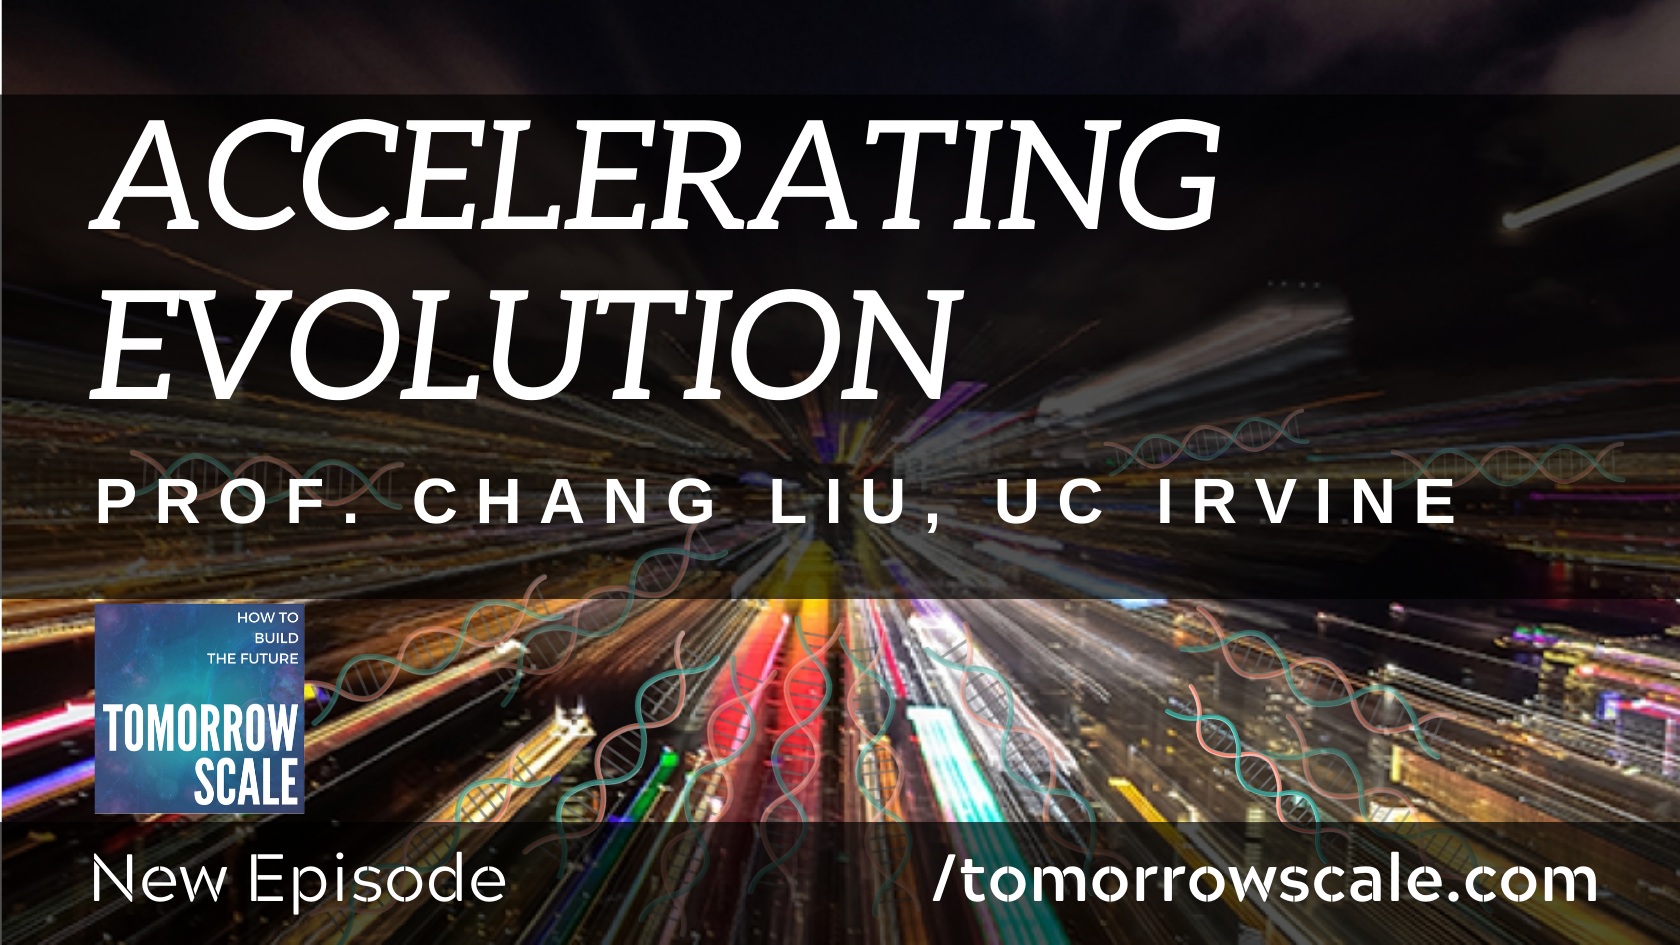 Accelerating Evolution - Prof Chang Liu